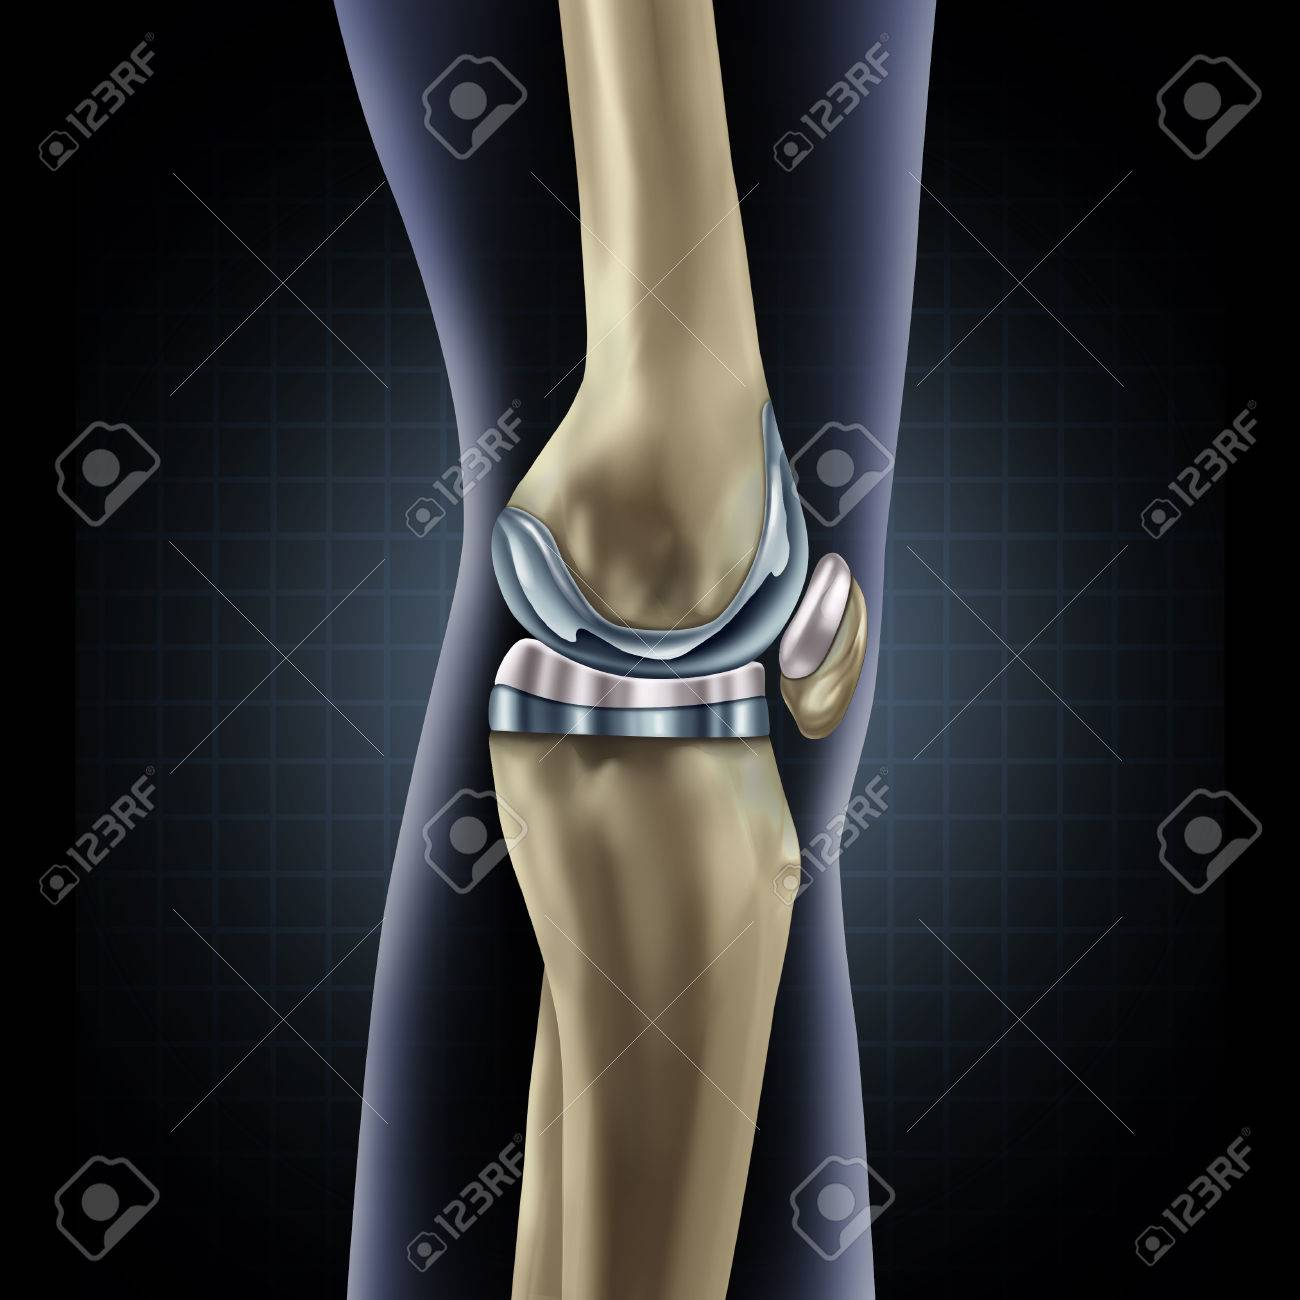 Knee replacement implant medical concept as a human leg anatomy after a prosthetic surgery as a musculoskeletal disease treatment symbol for orthopedics with 3D illustration elements. Standard-Bild - 56997807